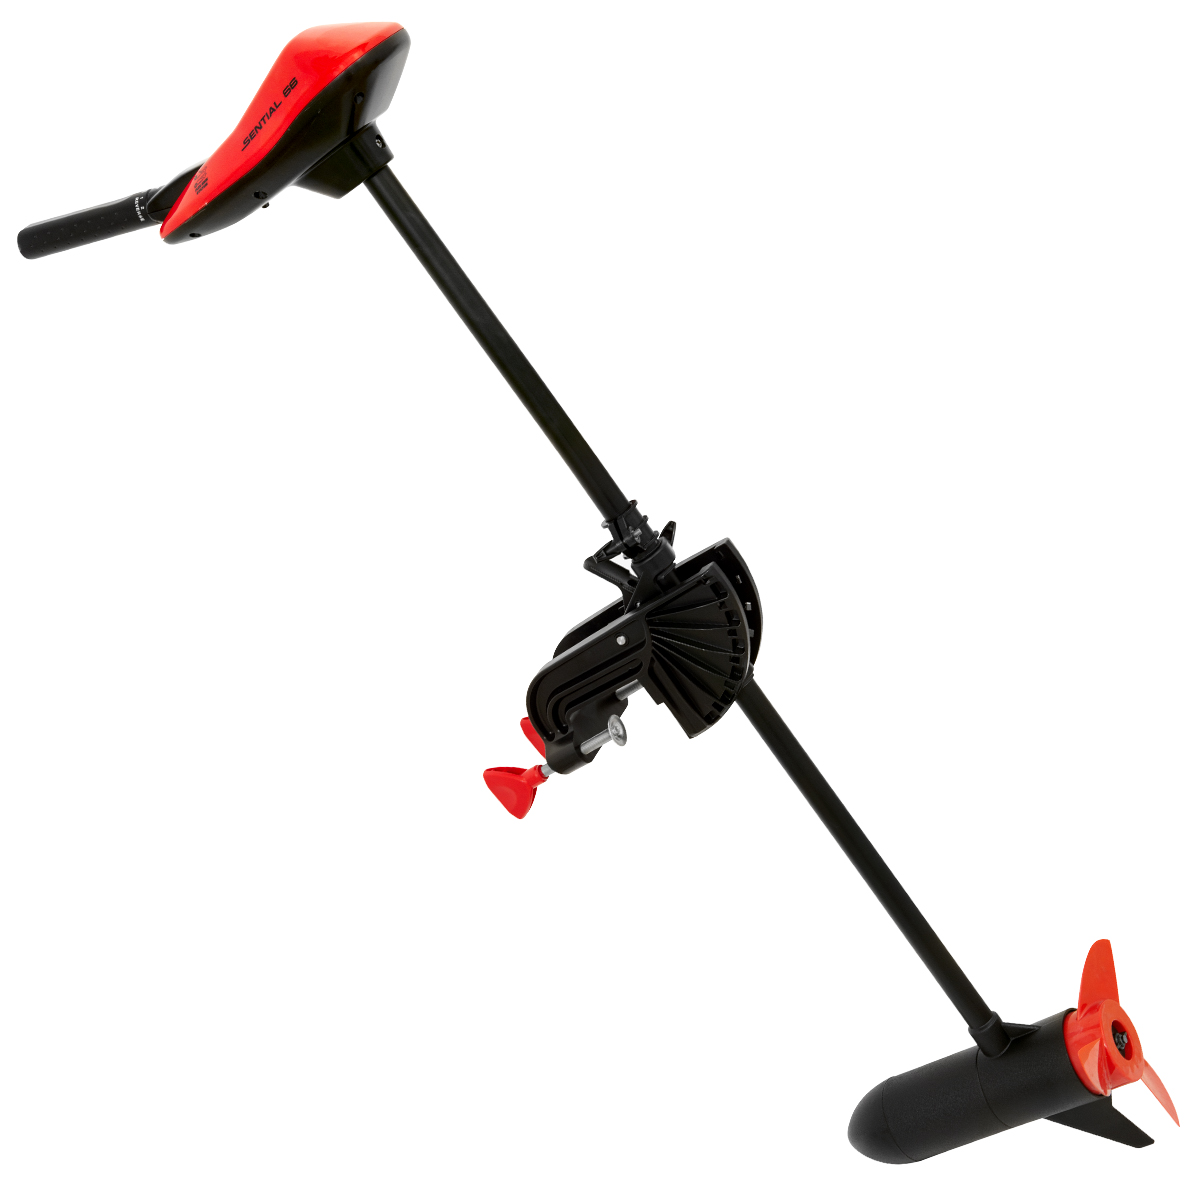 MOTOR ELECTRIC E-SENTIAL  BARCA RED 66 LBS - 74800266